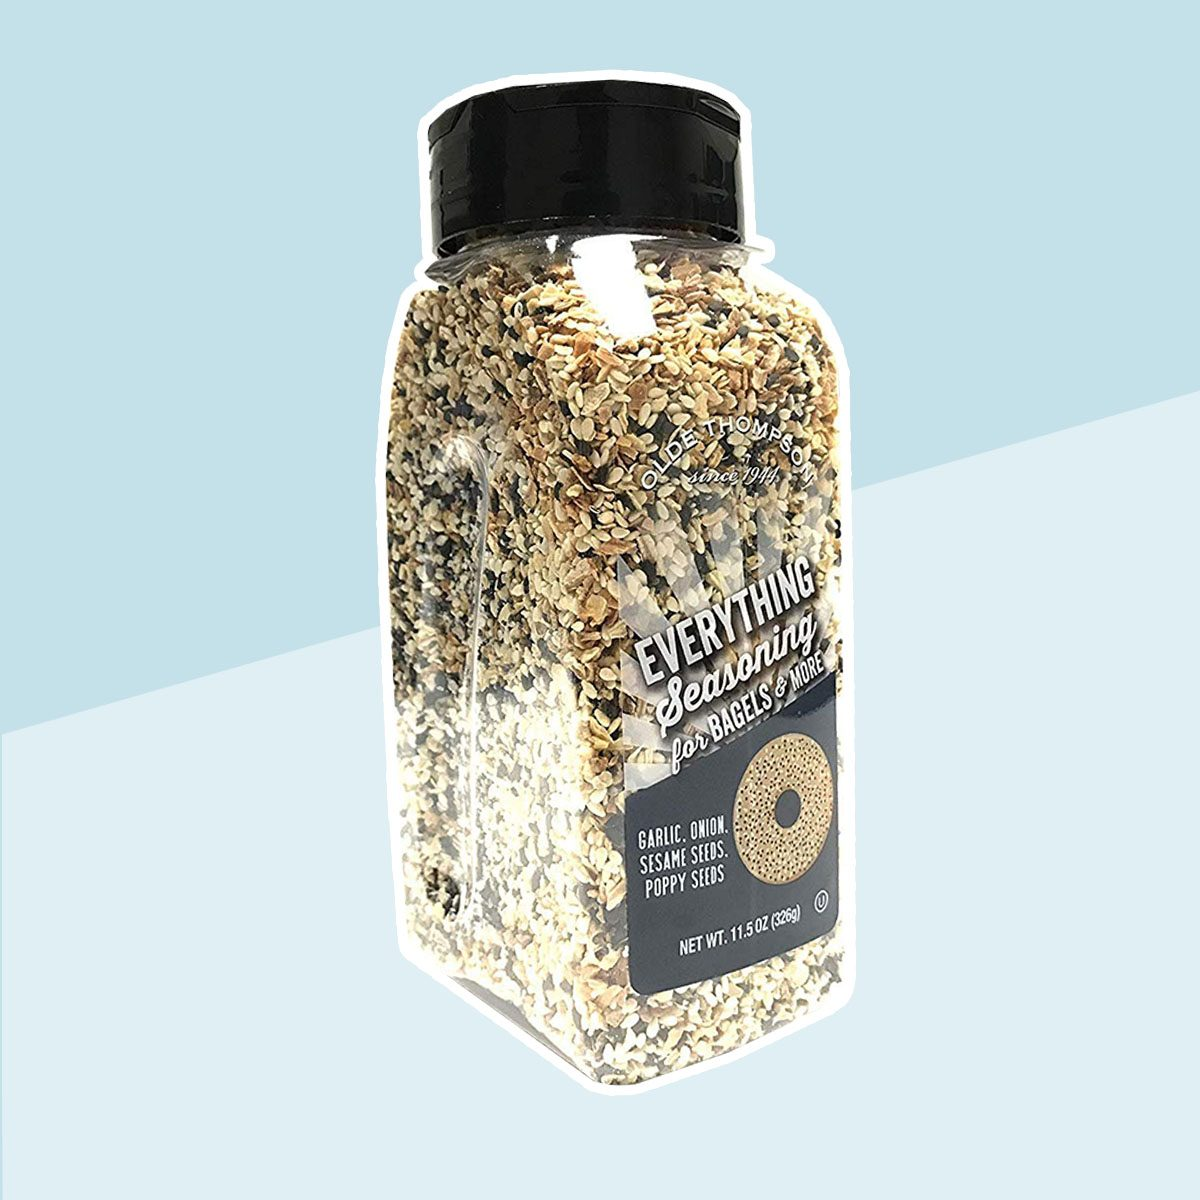 Olde Thompson Everything Seasoning For Bagels & More 11.5 OZ | 1 Pack Olde Thompson Everything Seasoning For Bagels & More 11.5 OZ | 1 Pack Tell us if something is incorrect Olde Thompson Everything Seasoning For Bagels & More